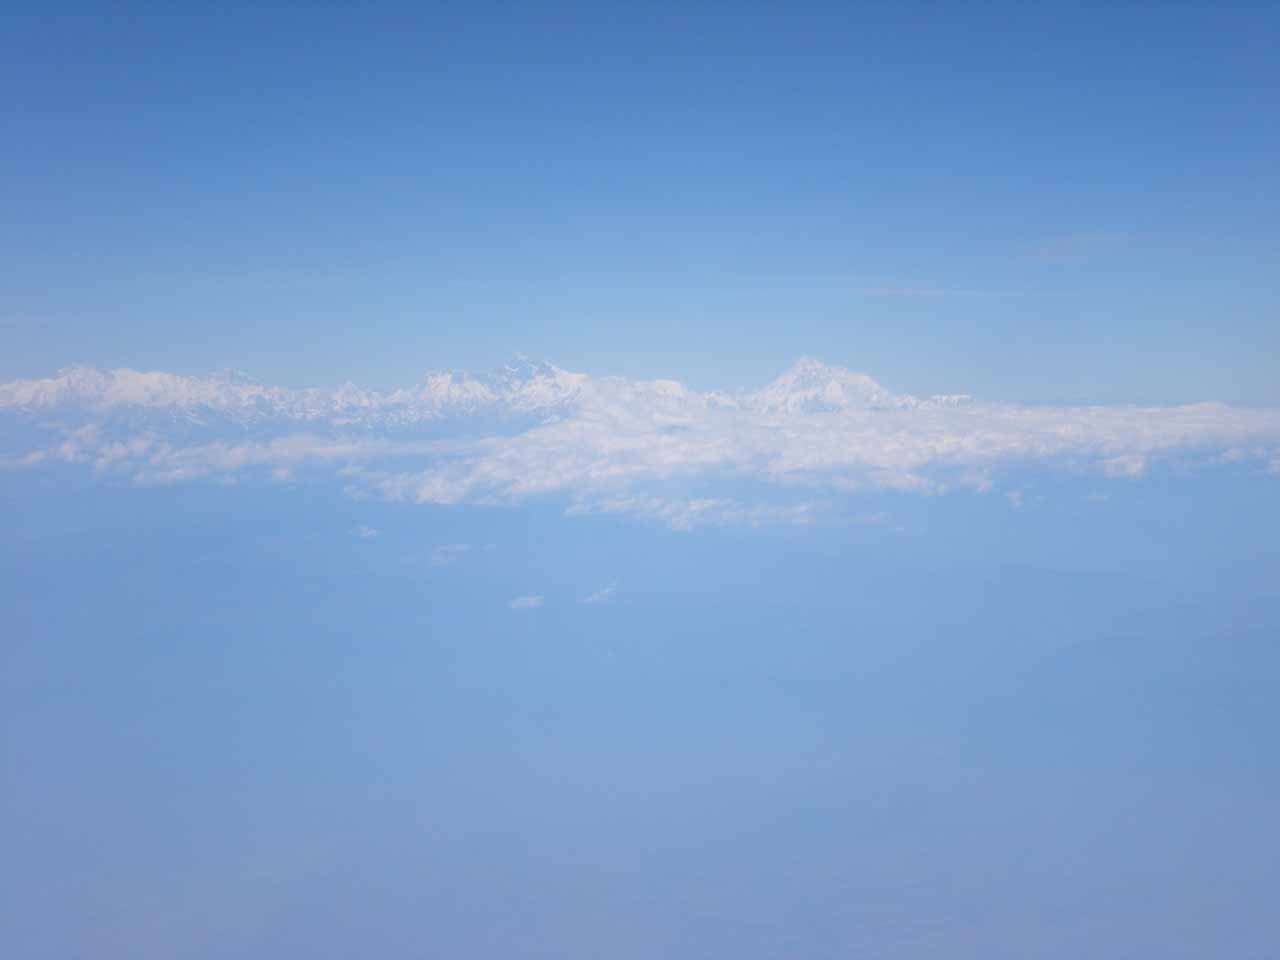 Mt Everest in the distance